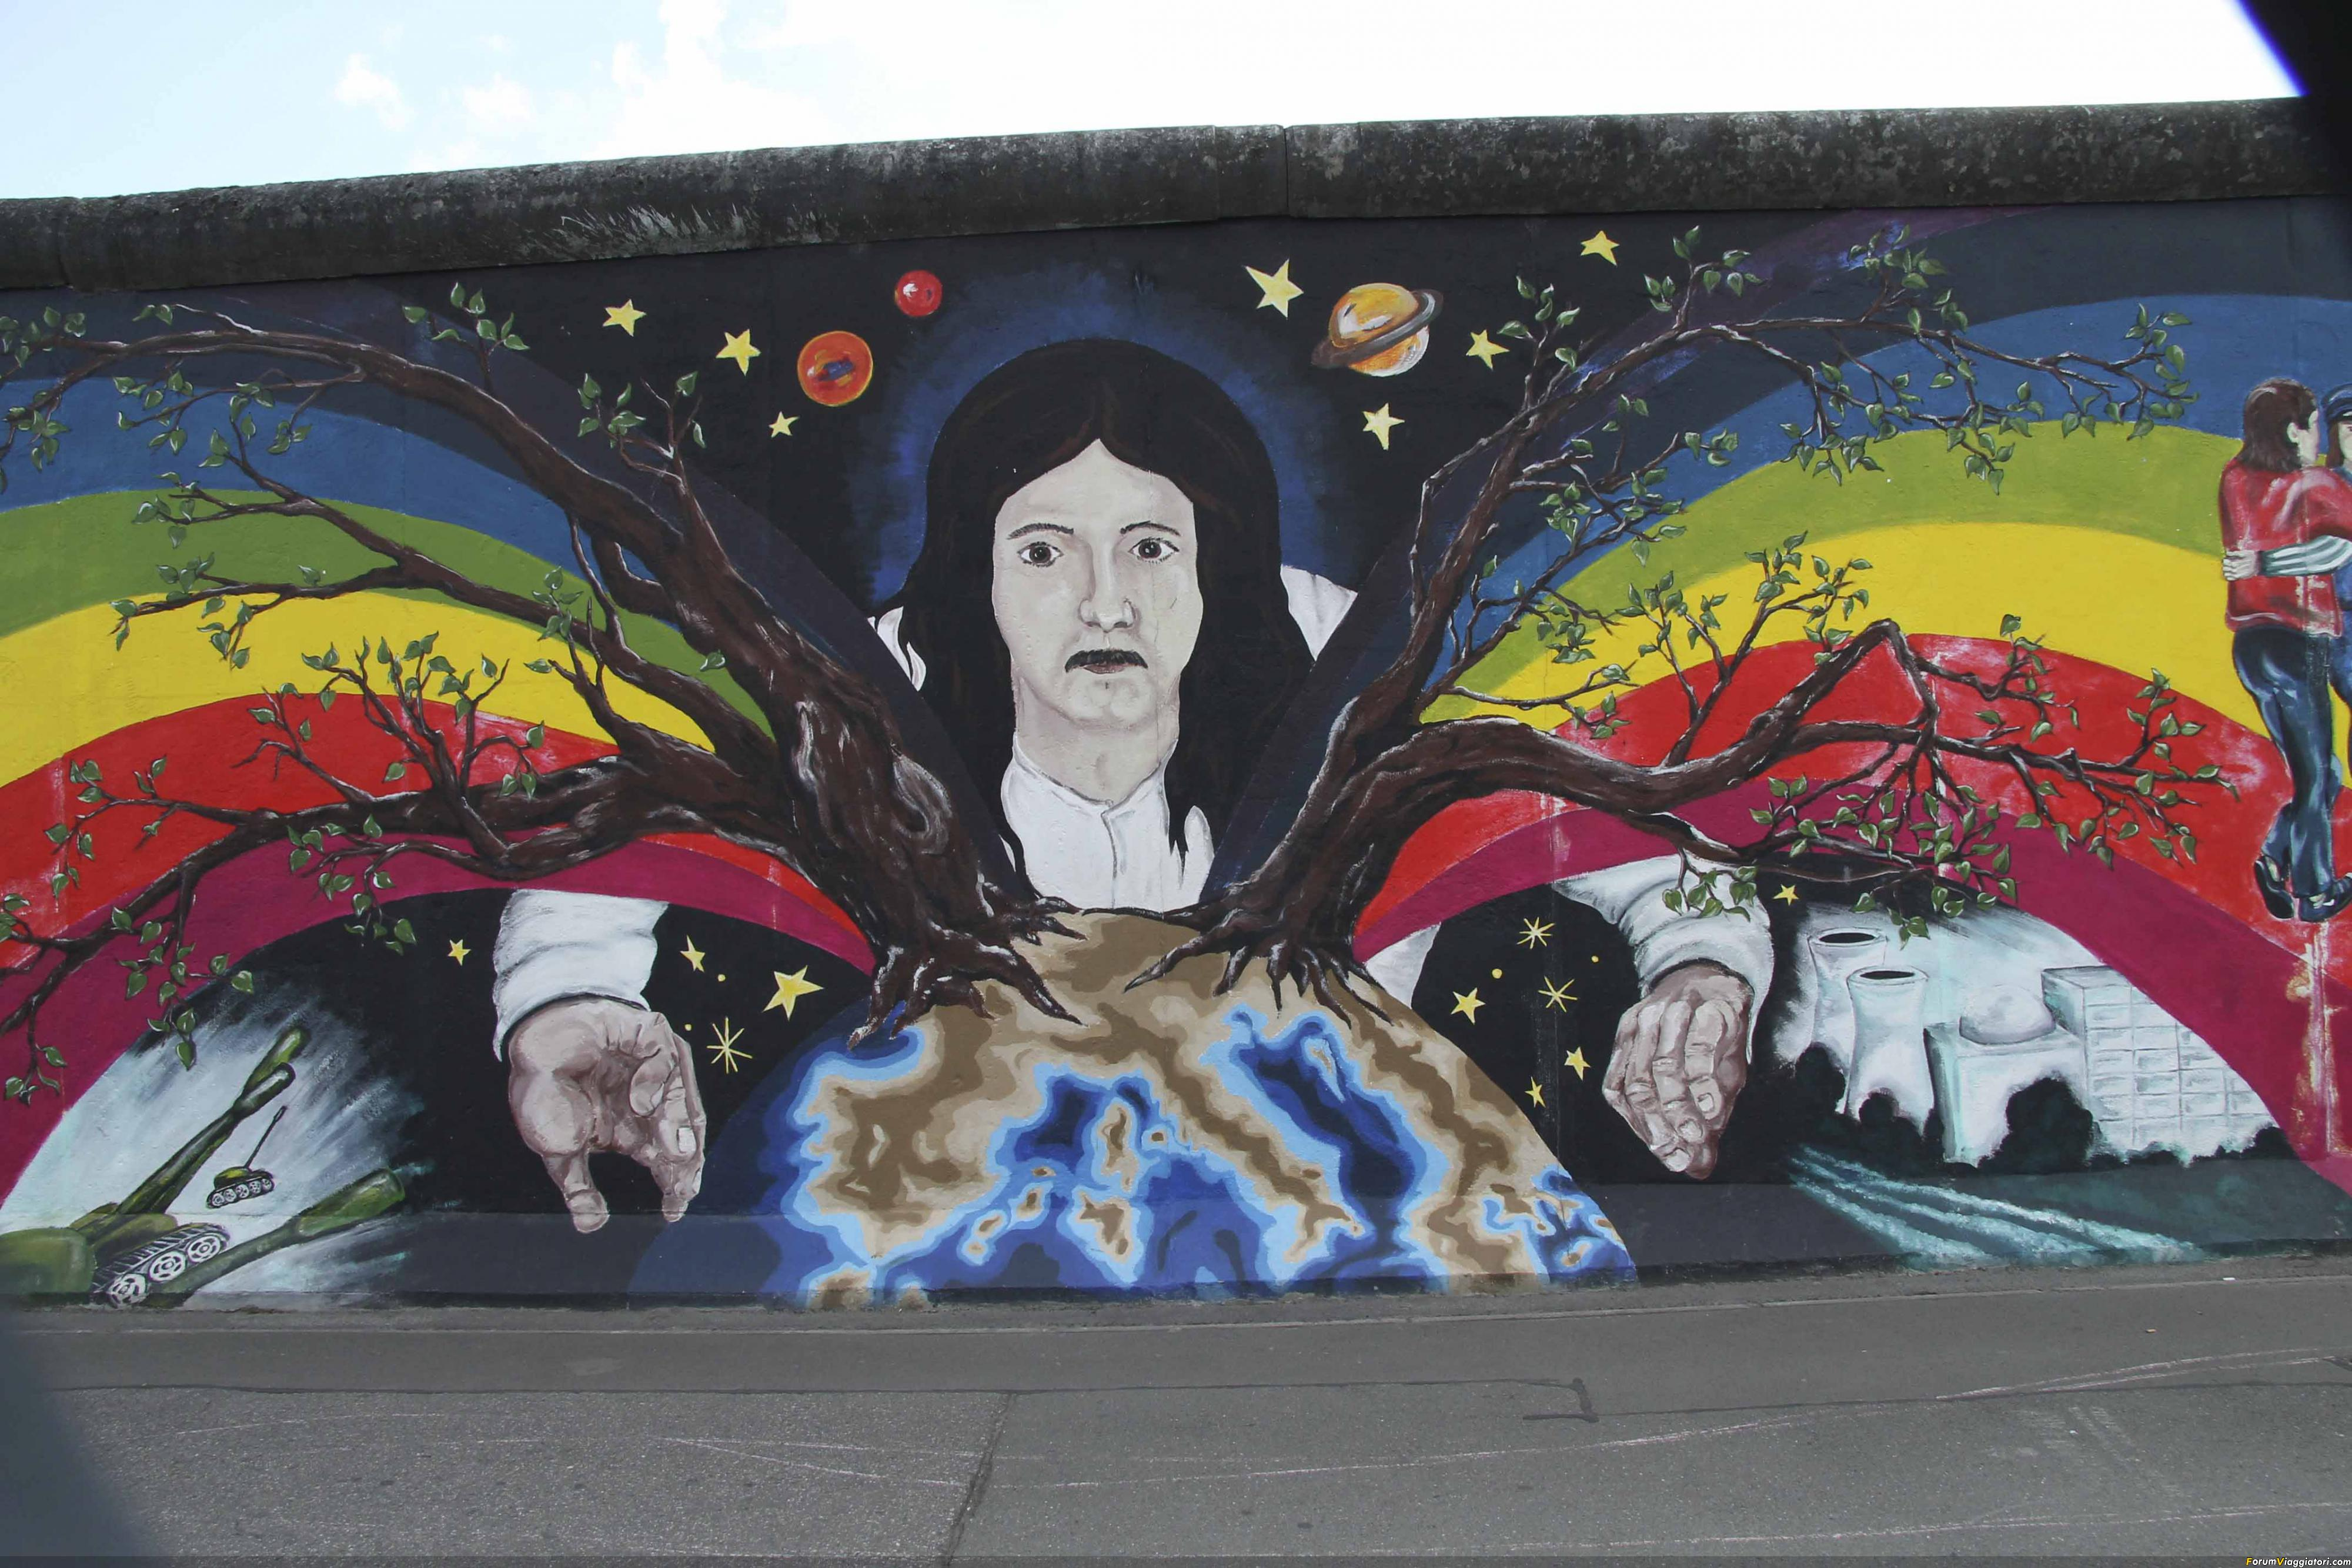 East side gallery (Berlino)